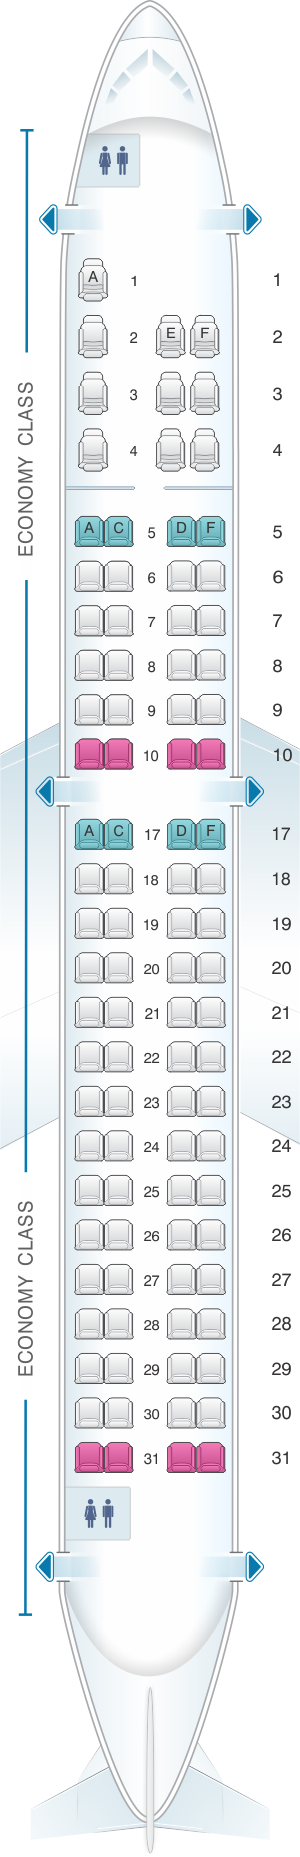 Seat map for Copa Airlines Embraer ERJ 190A